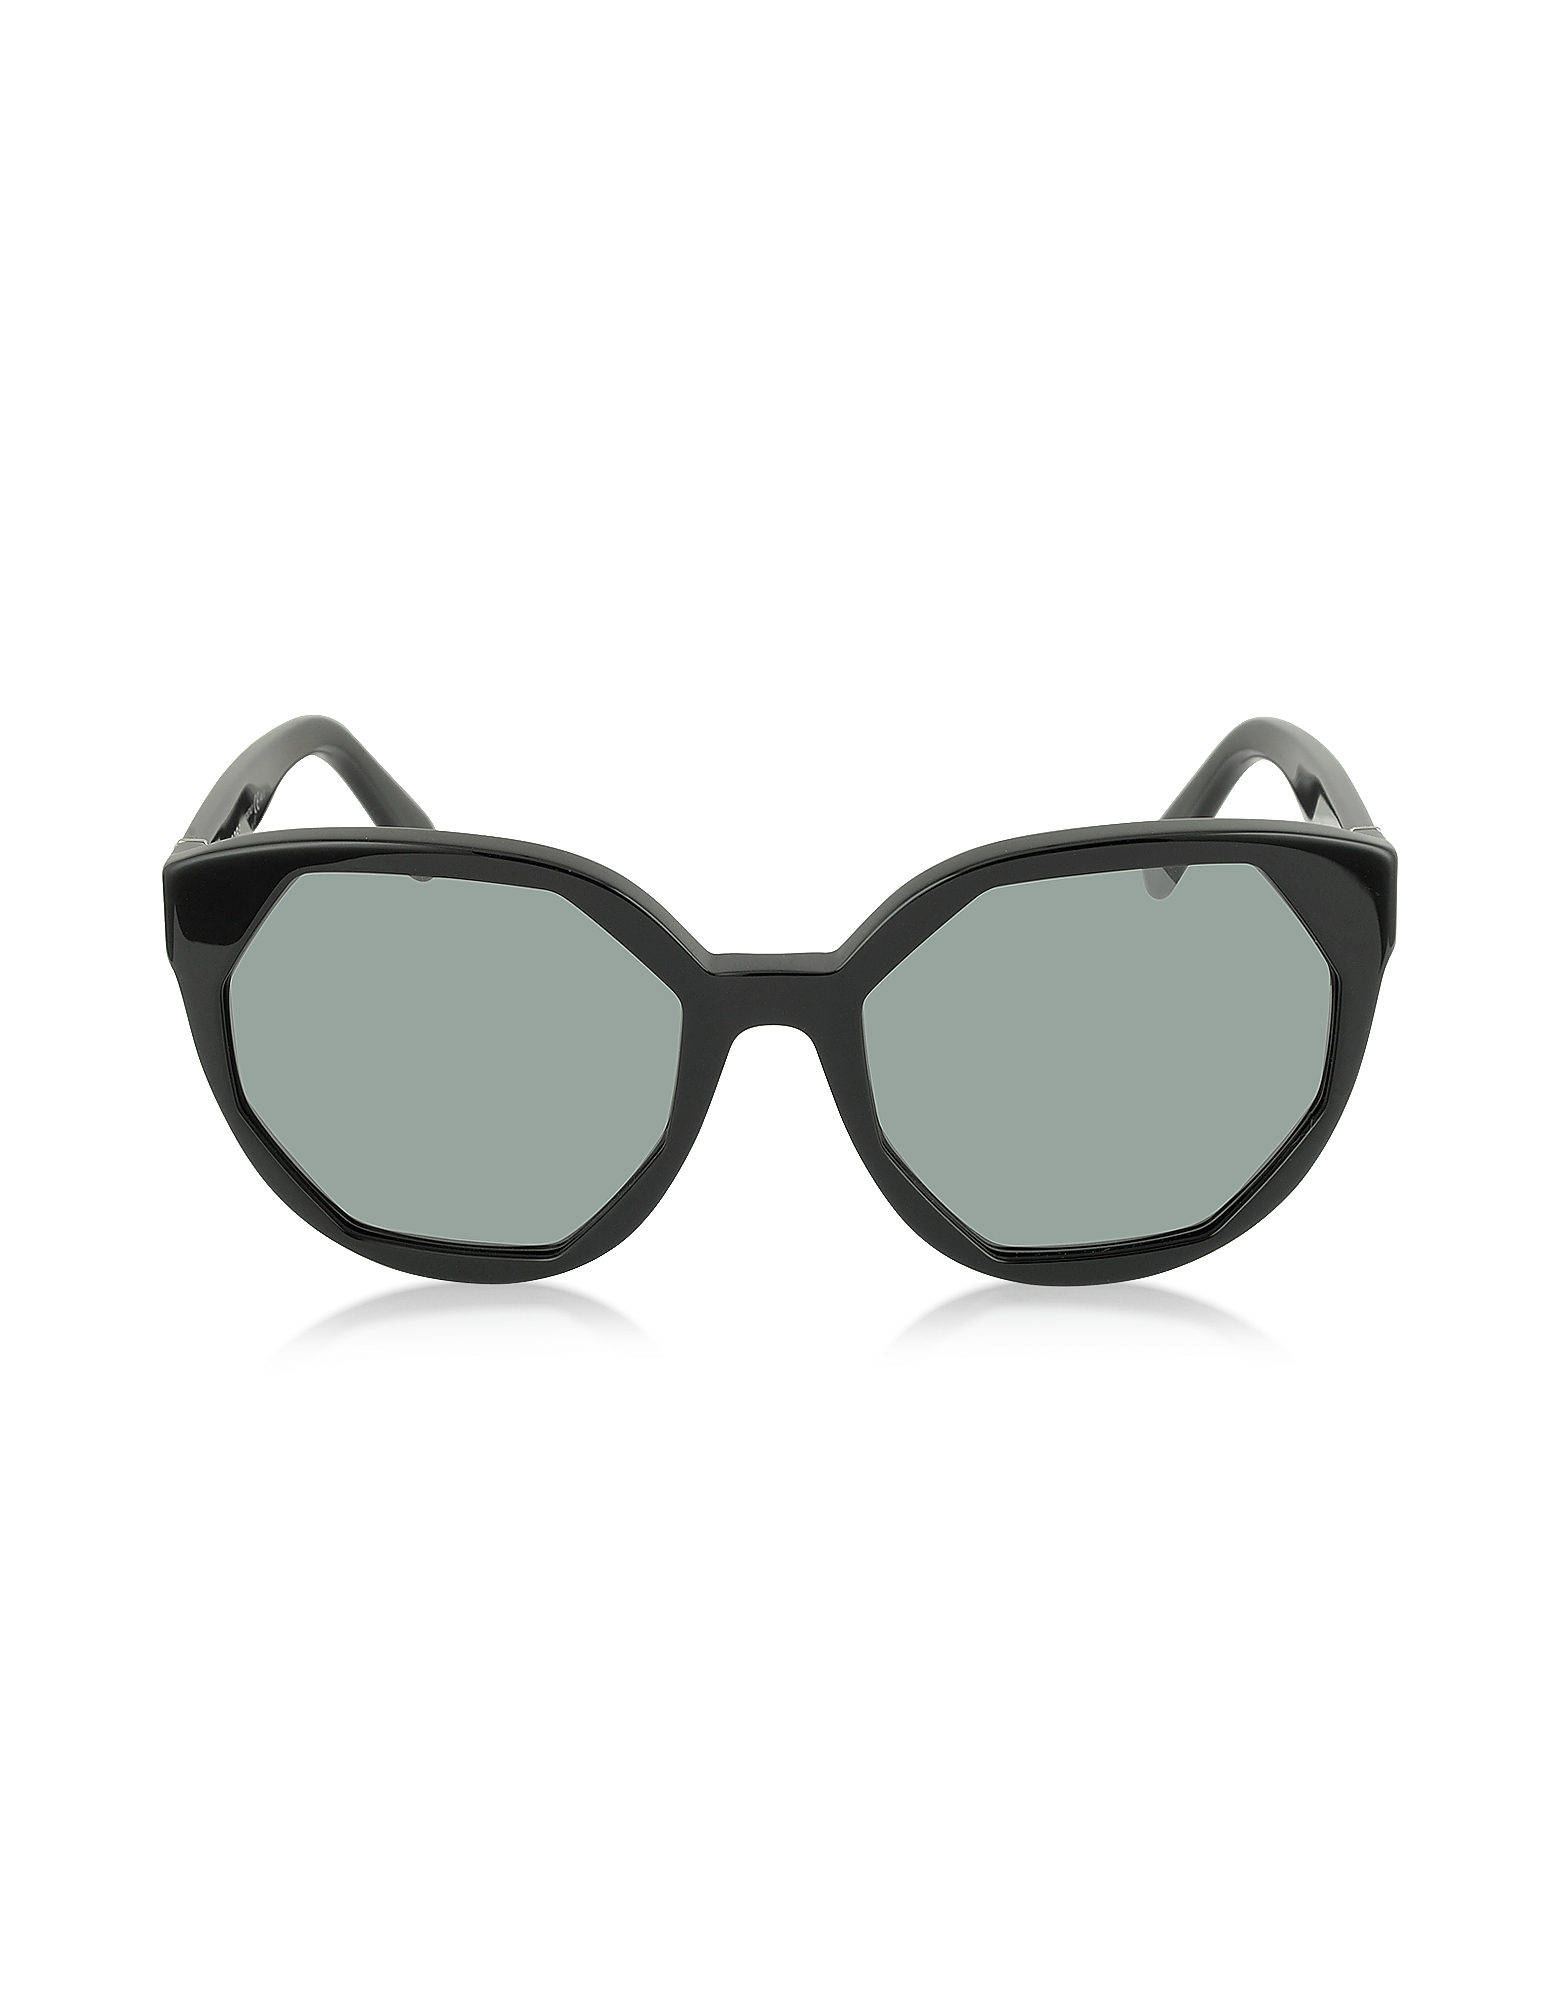 Marc Jacobs Sunglasses, MJ 585/S Oversized Round Sunglasses